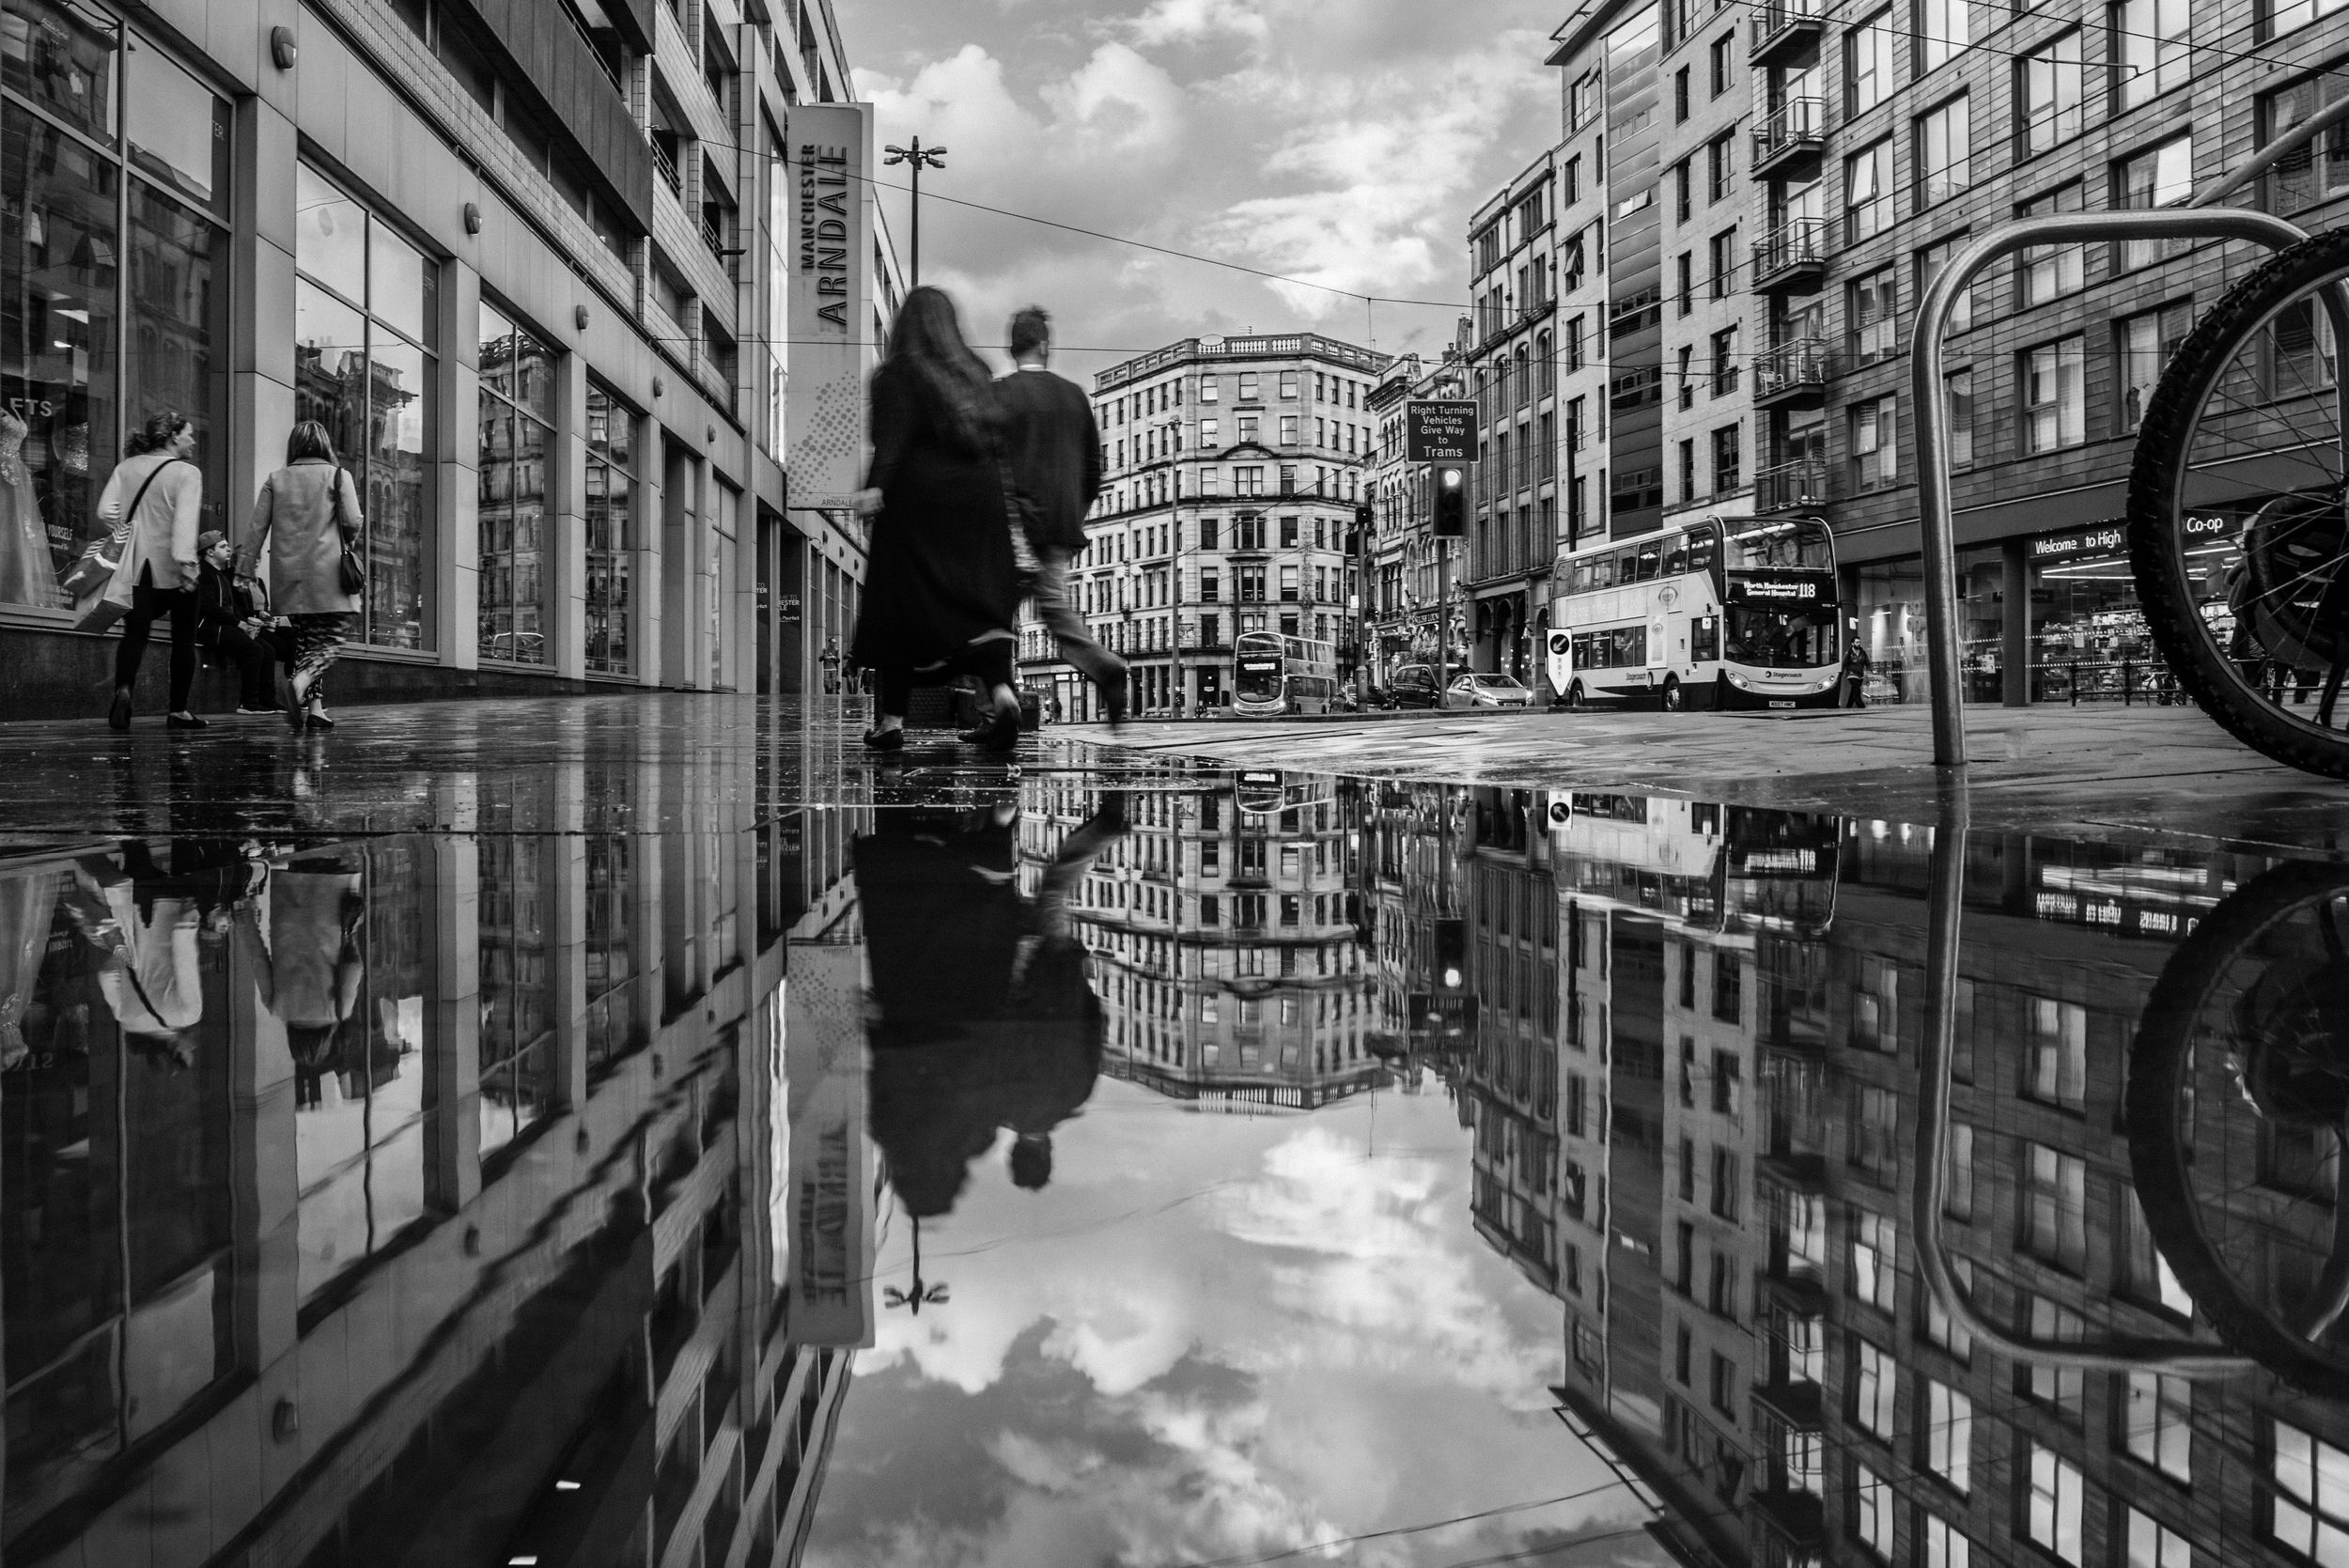 A shot of Sudehill in Manchester, symmetrical reflection in a puddle of a relaxed street scene in black and white.